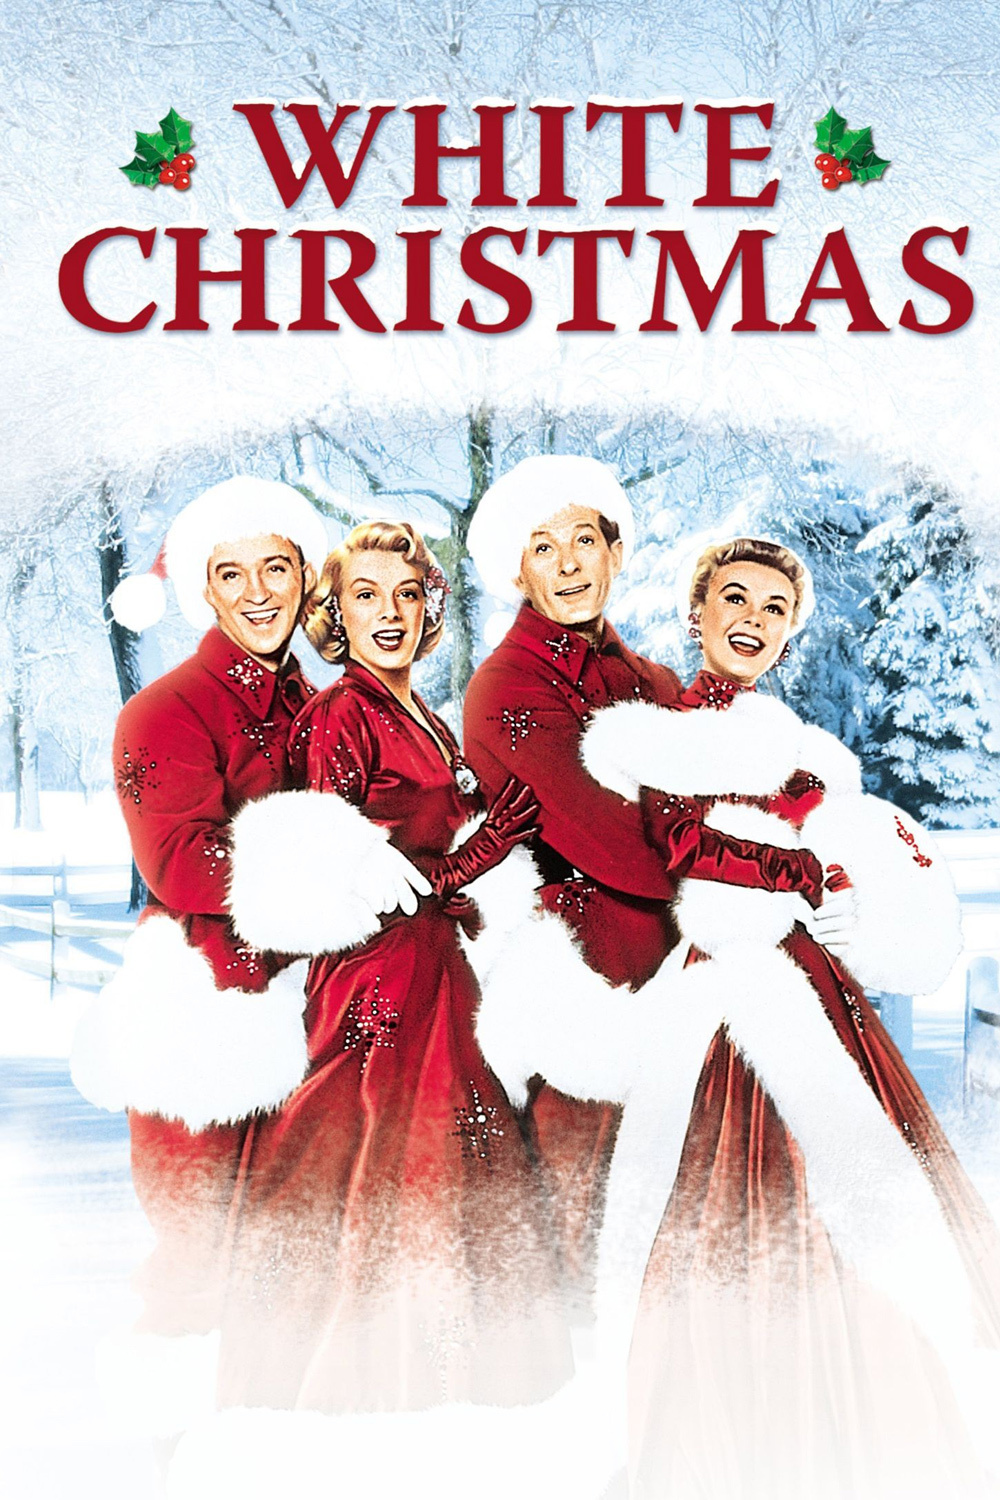 whitechristmas - White Christmas Song